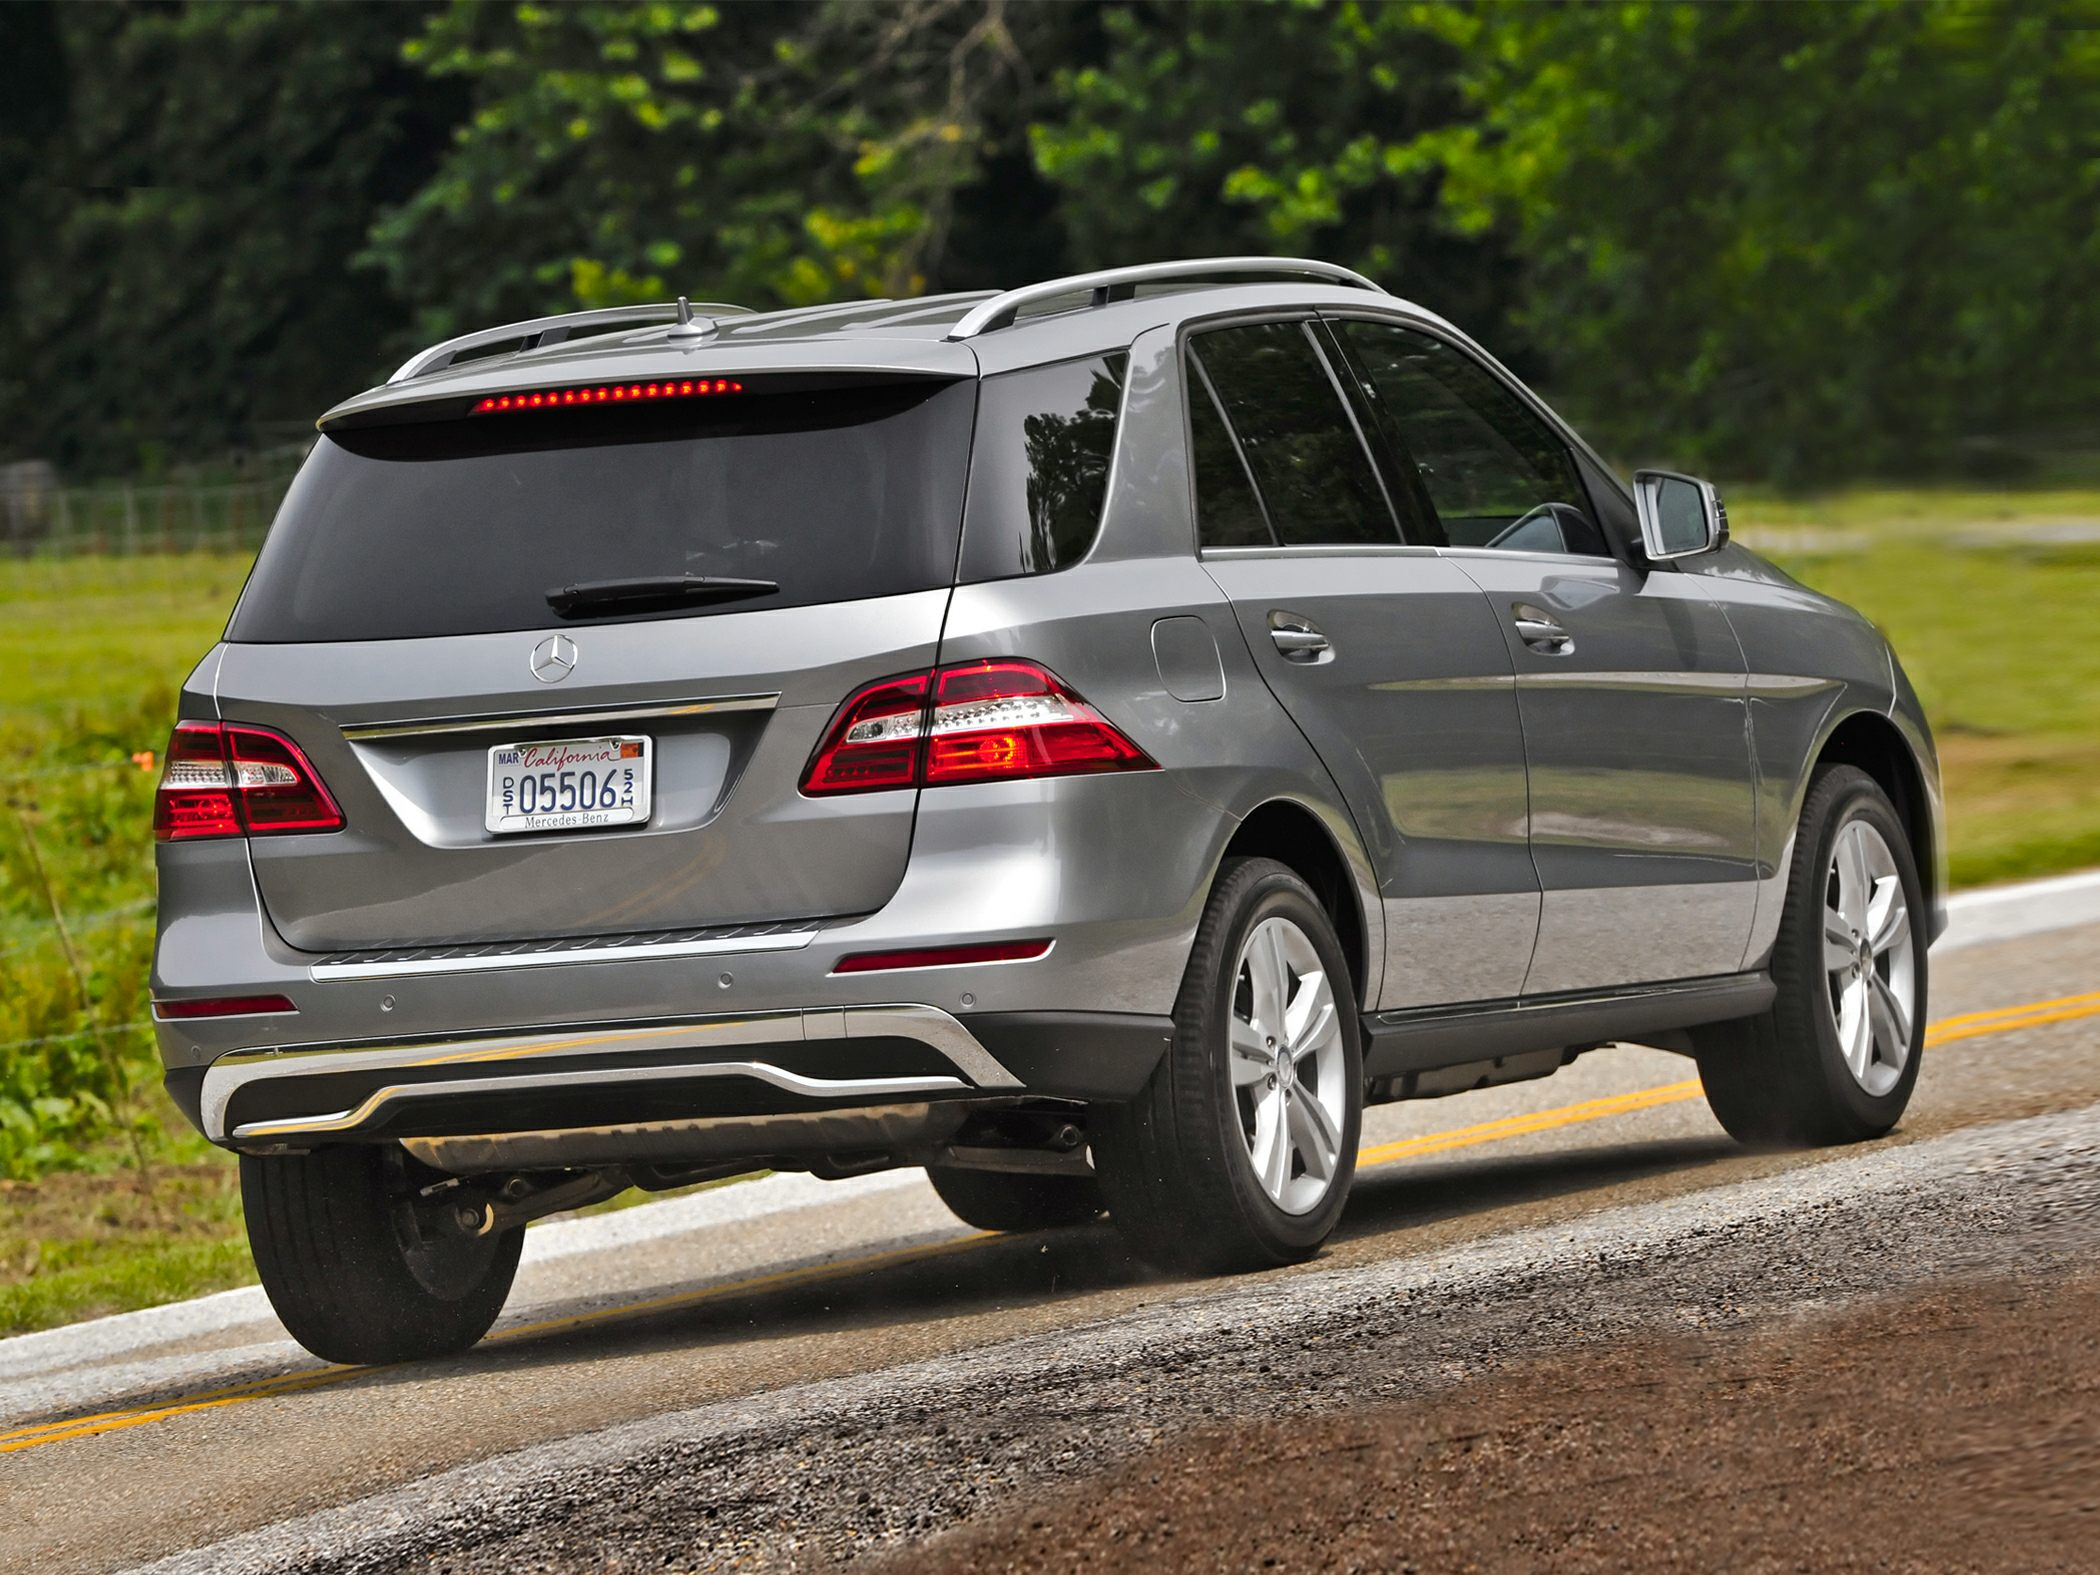 Mercedes-Benz ML350 Rear